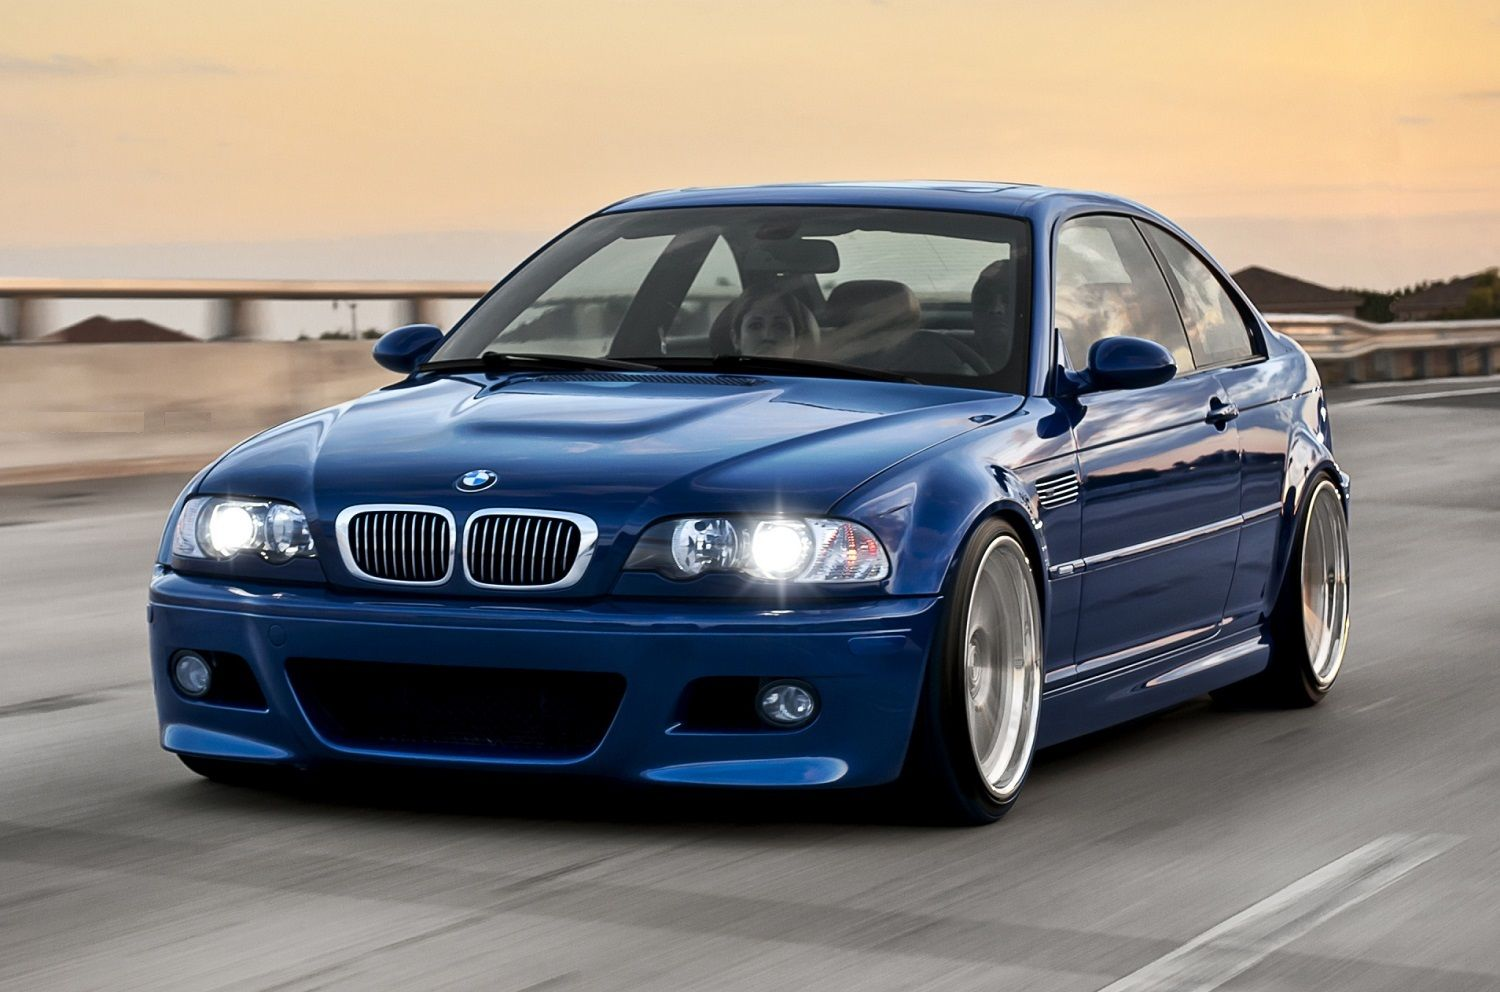 BMW E Many Series Enthusiasts Regard The E As The Best Of - Bmw 3 series e46